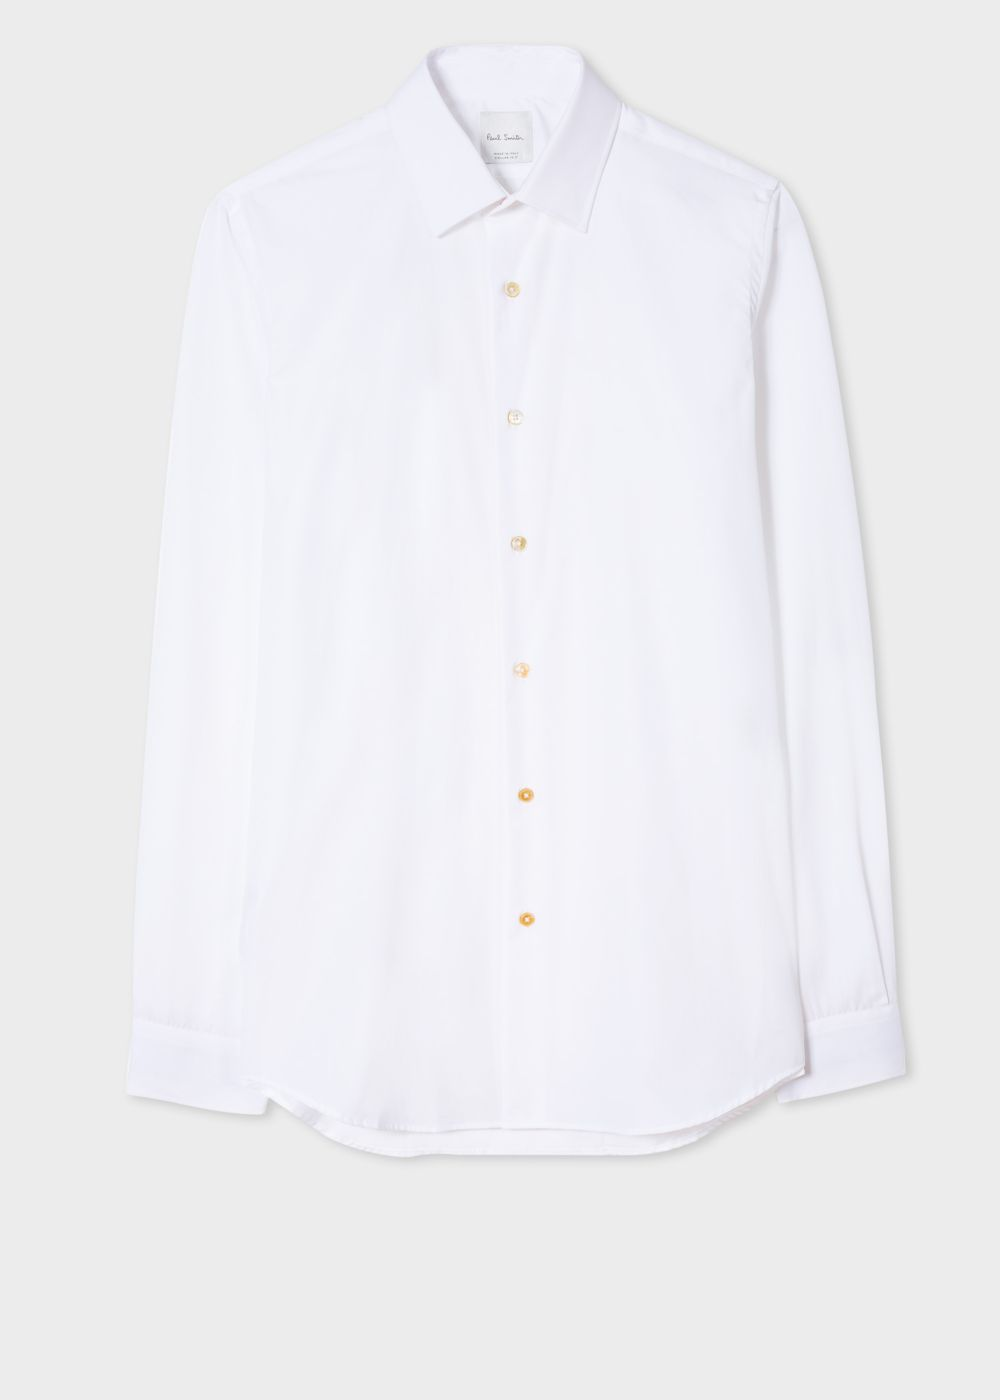 Paul Smith Men's Classic-Fit White Cotton 'Artist Stripe' Cuff Shirt